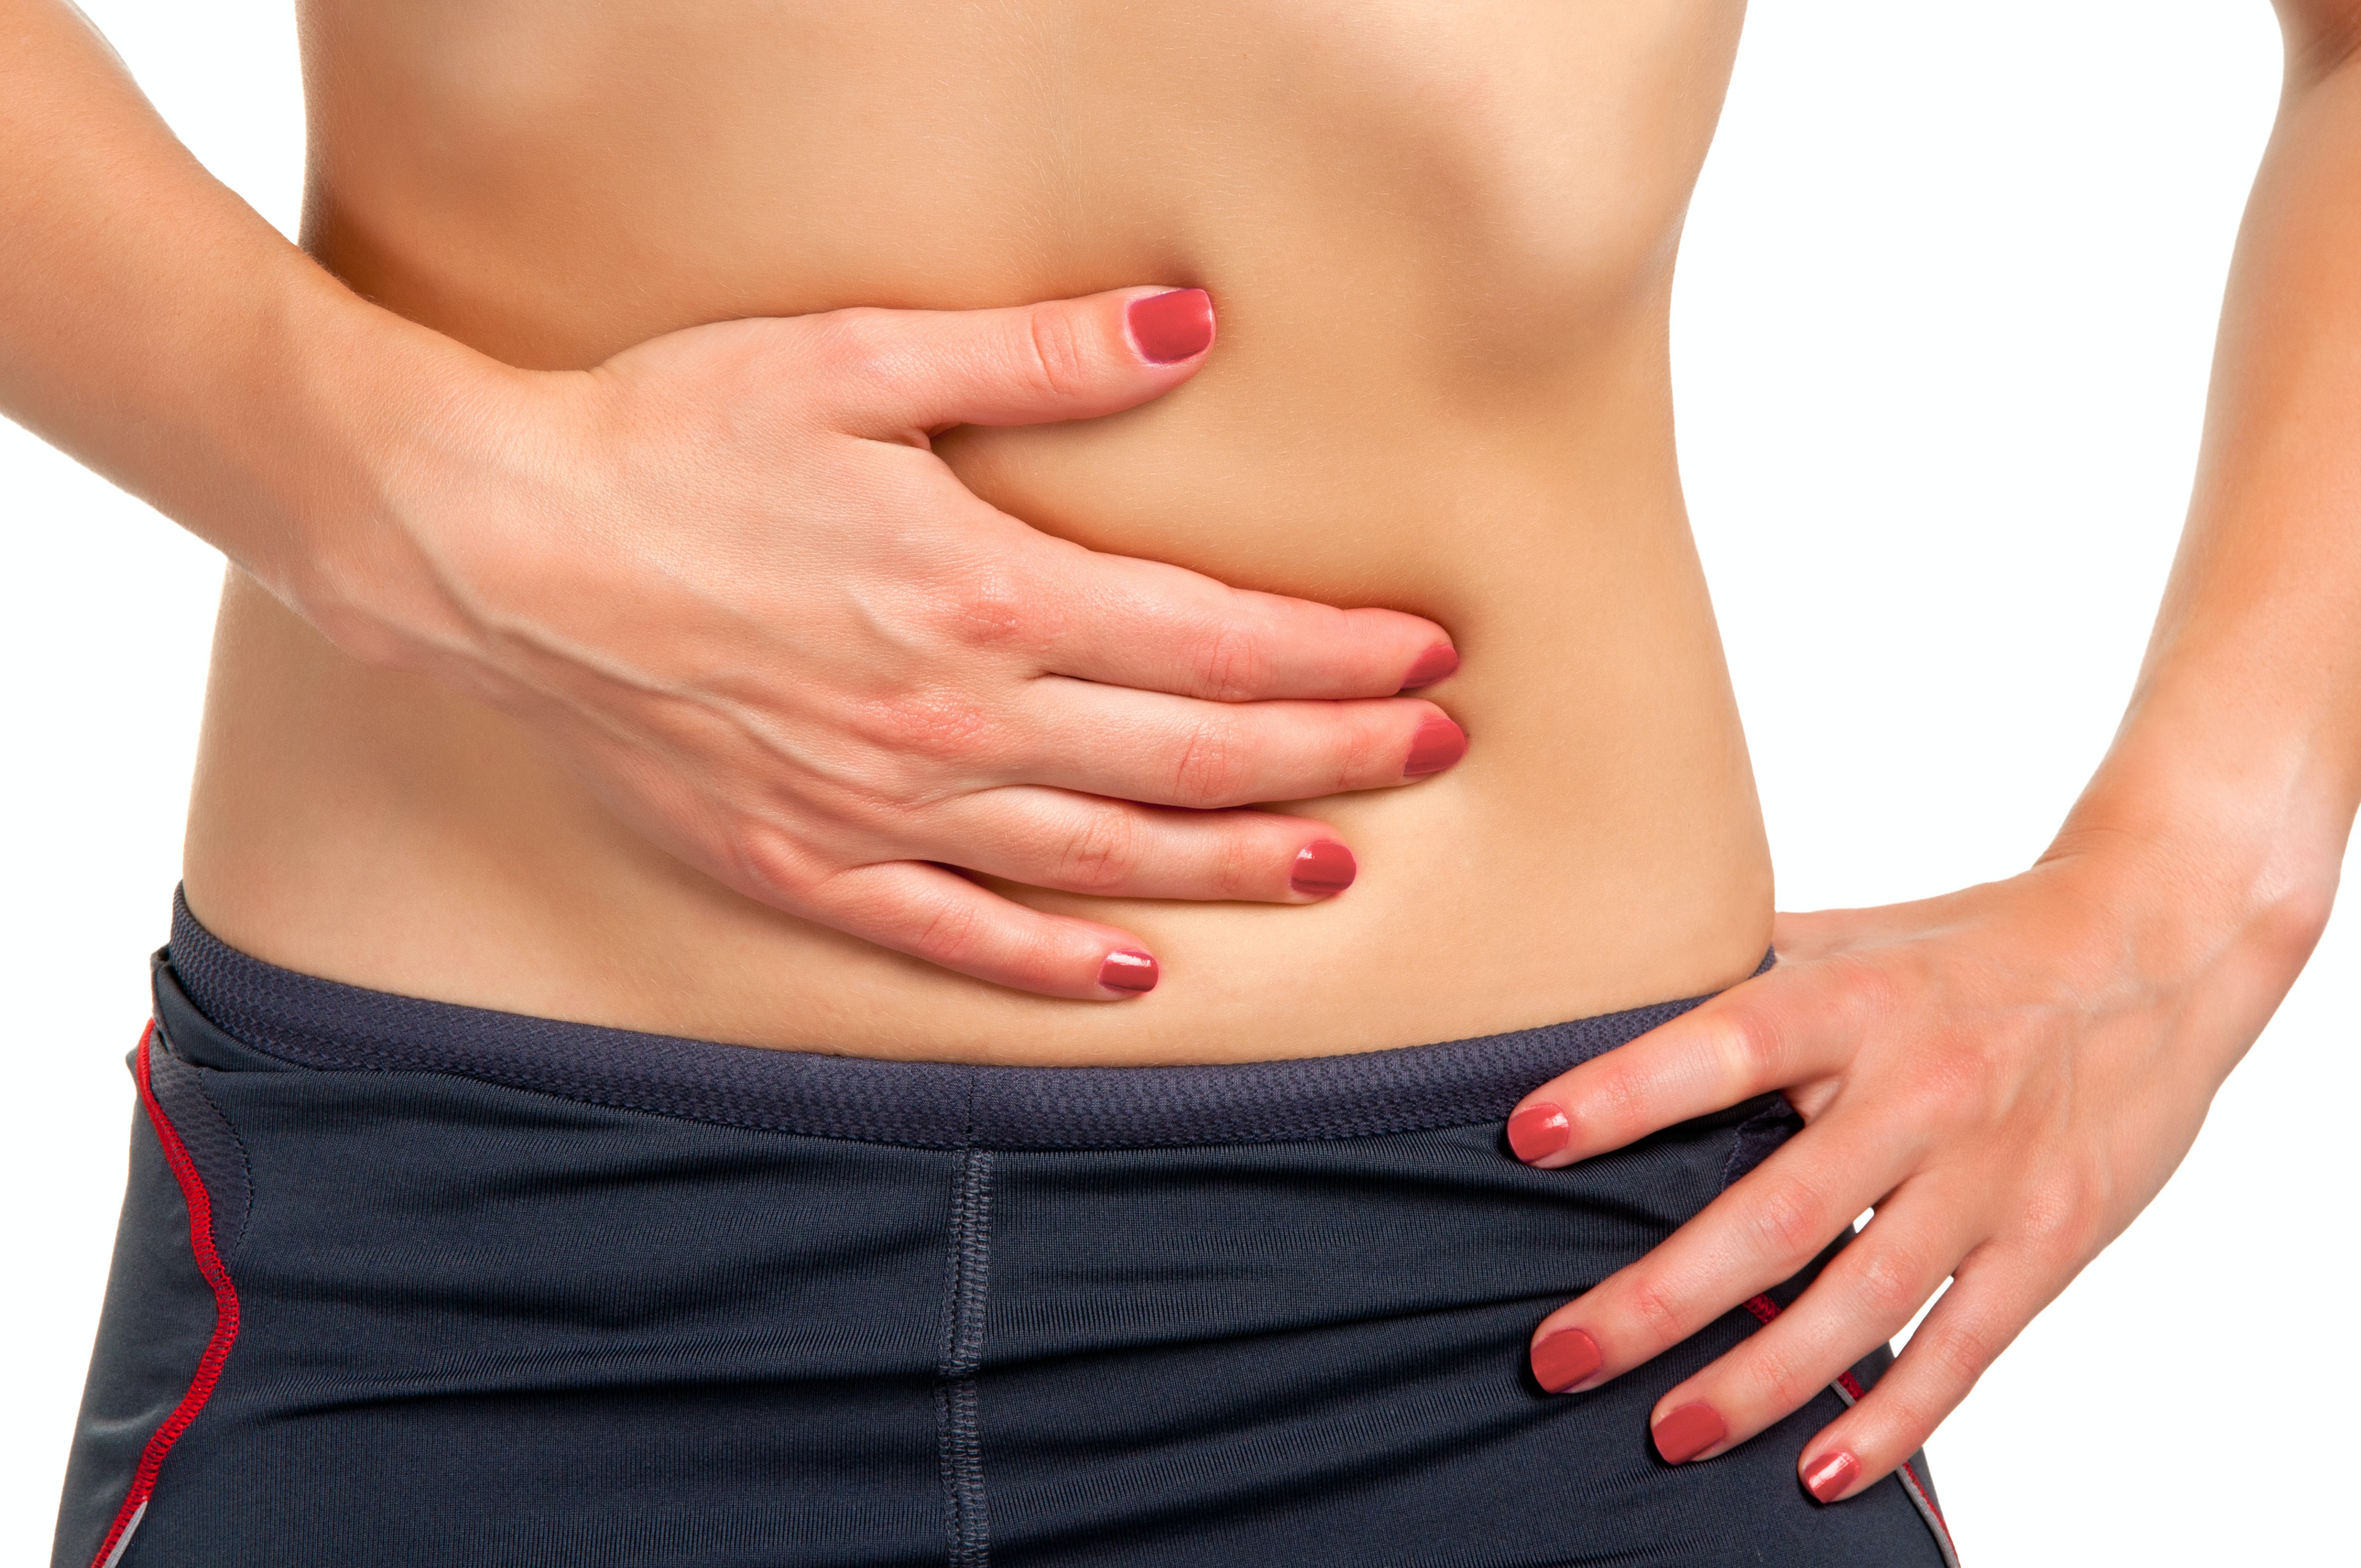 An image depicting a person suffering from abdominal bump symptoms